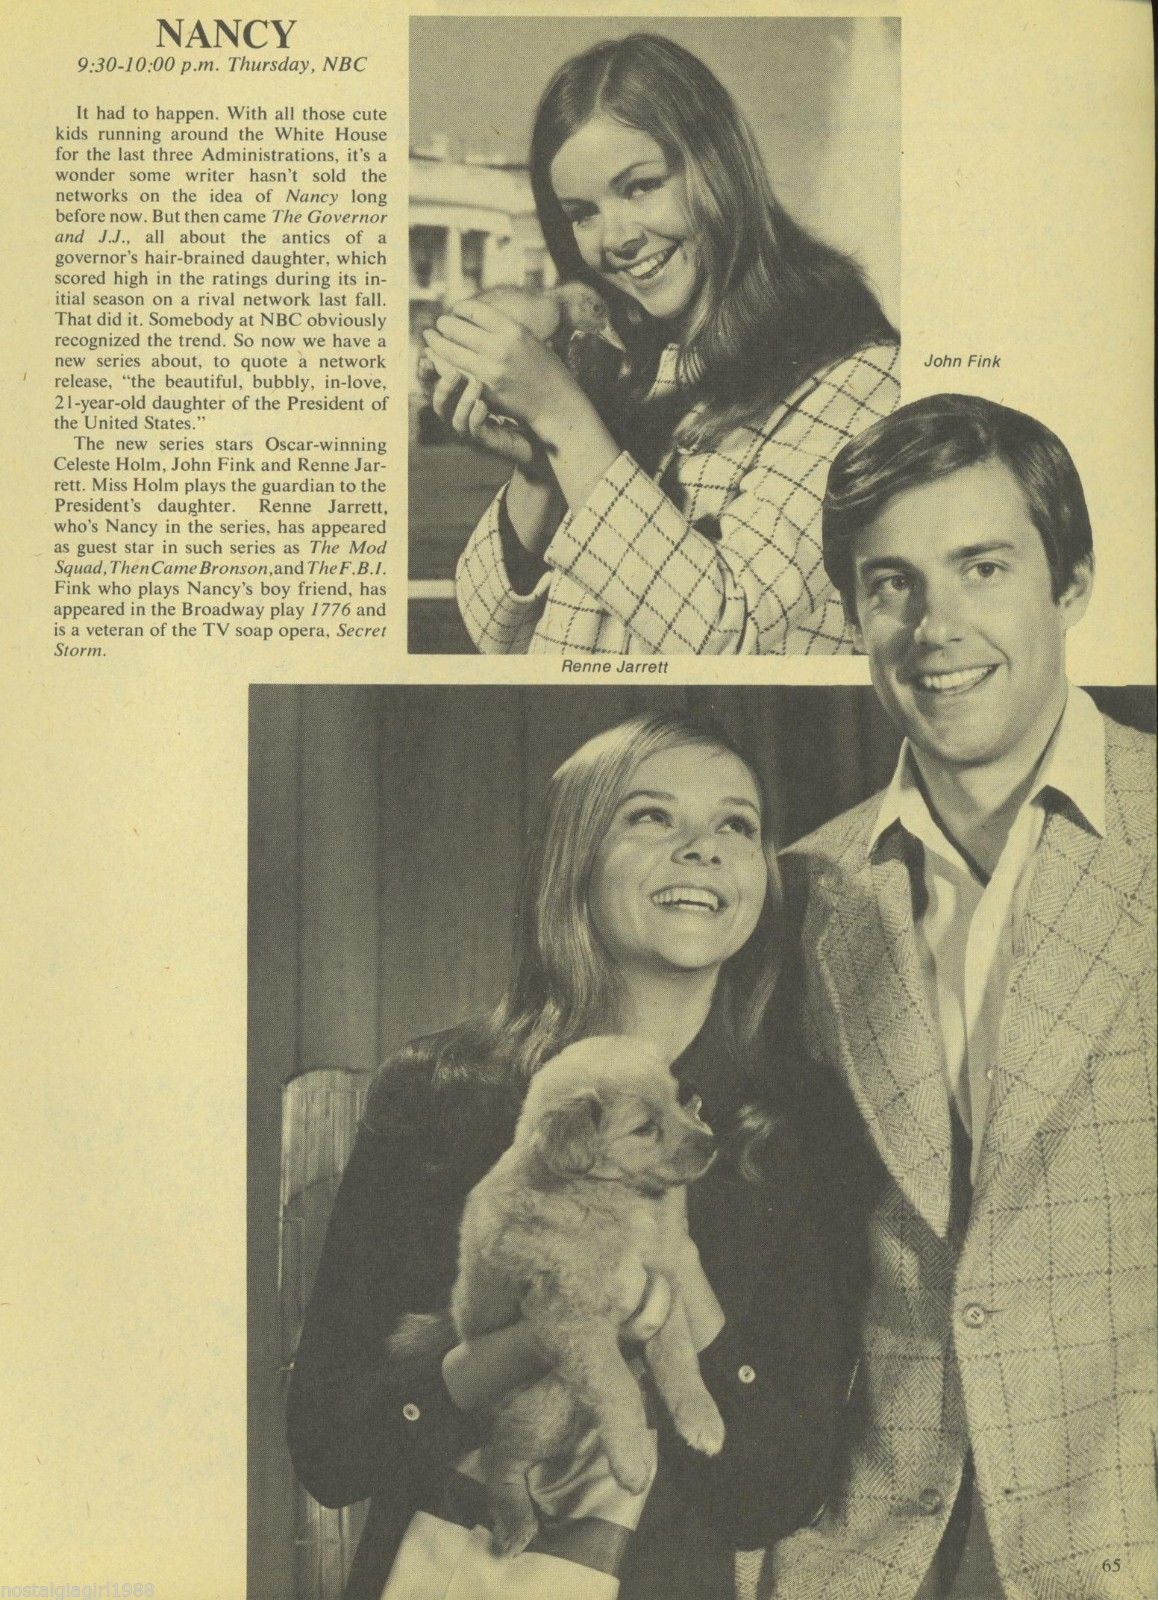 s-l16001971_Ad_Nanny_the_Professor_Nancy_R_Jarrett_Tv_fall_preview_promo_8x10_75x2